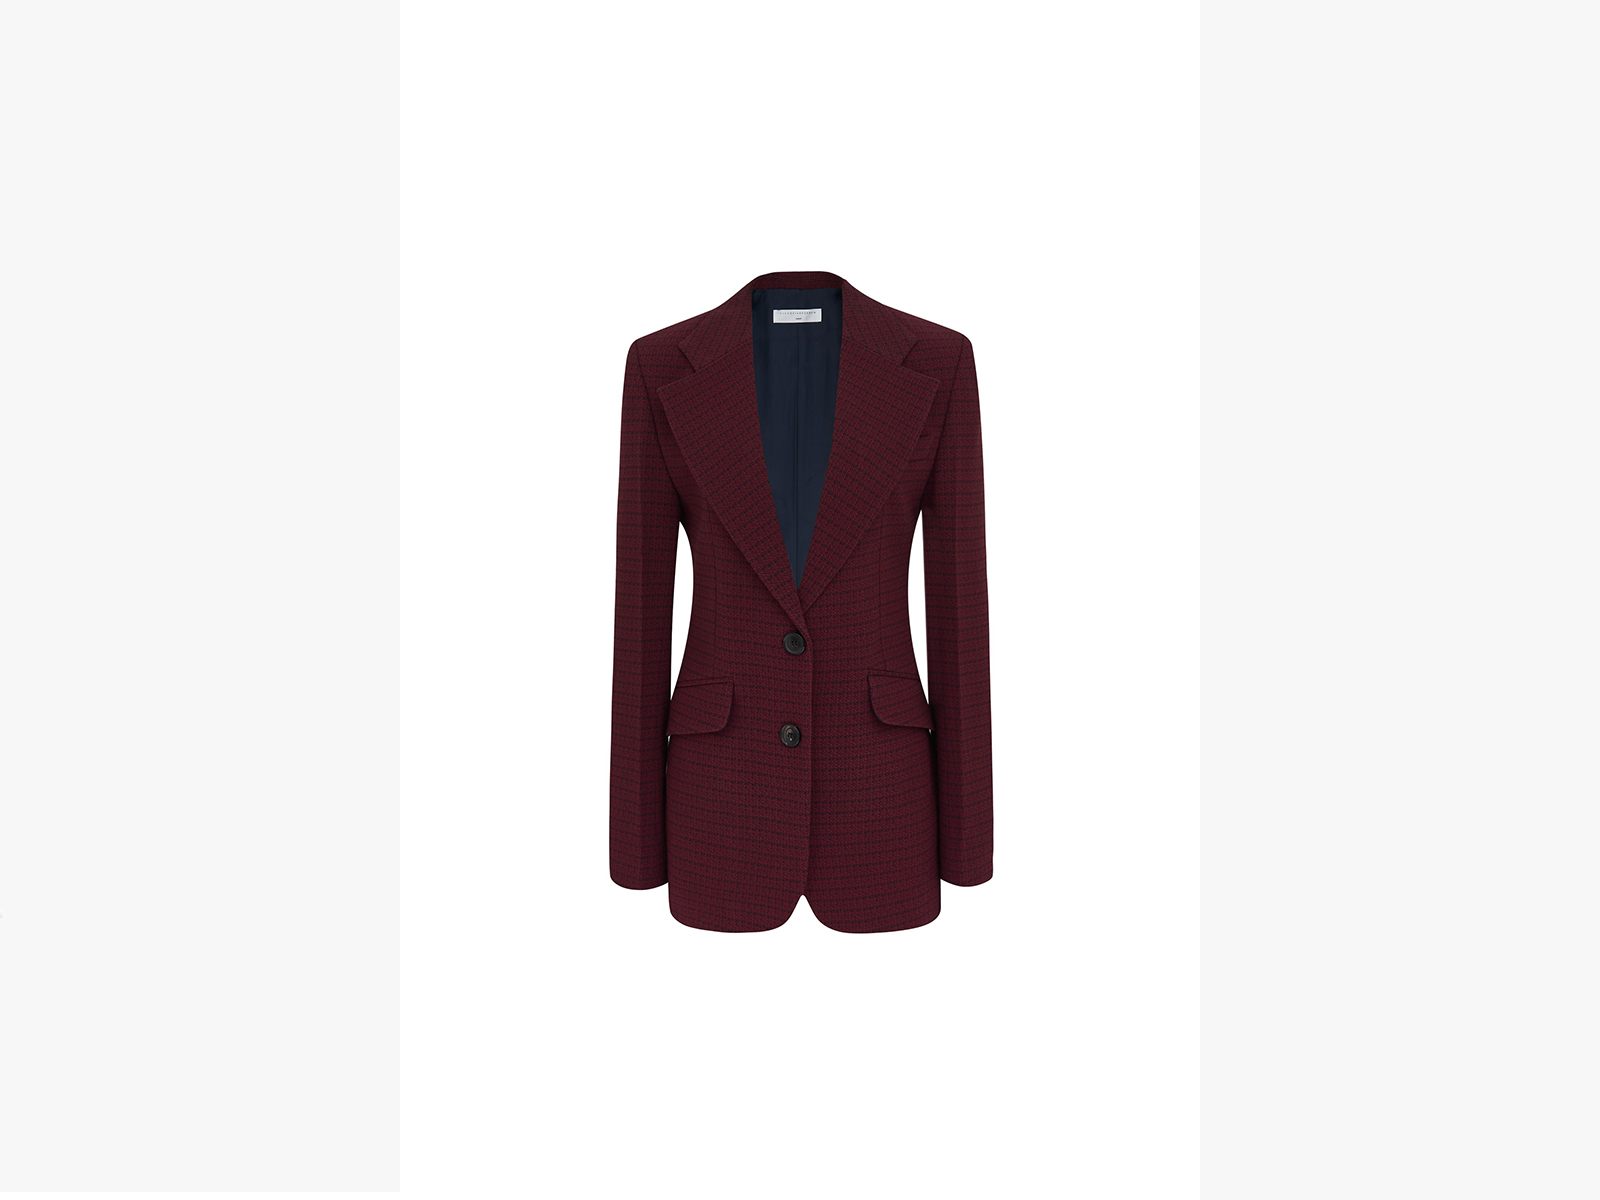 Victoria Beckham Jarvis Tailored Jacket in Bordeaux